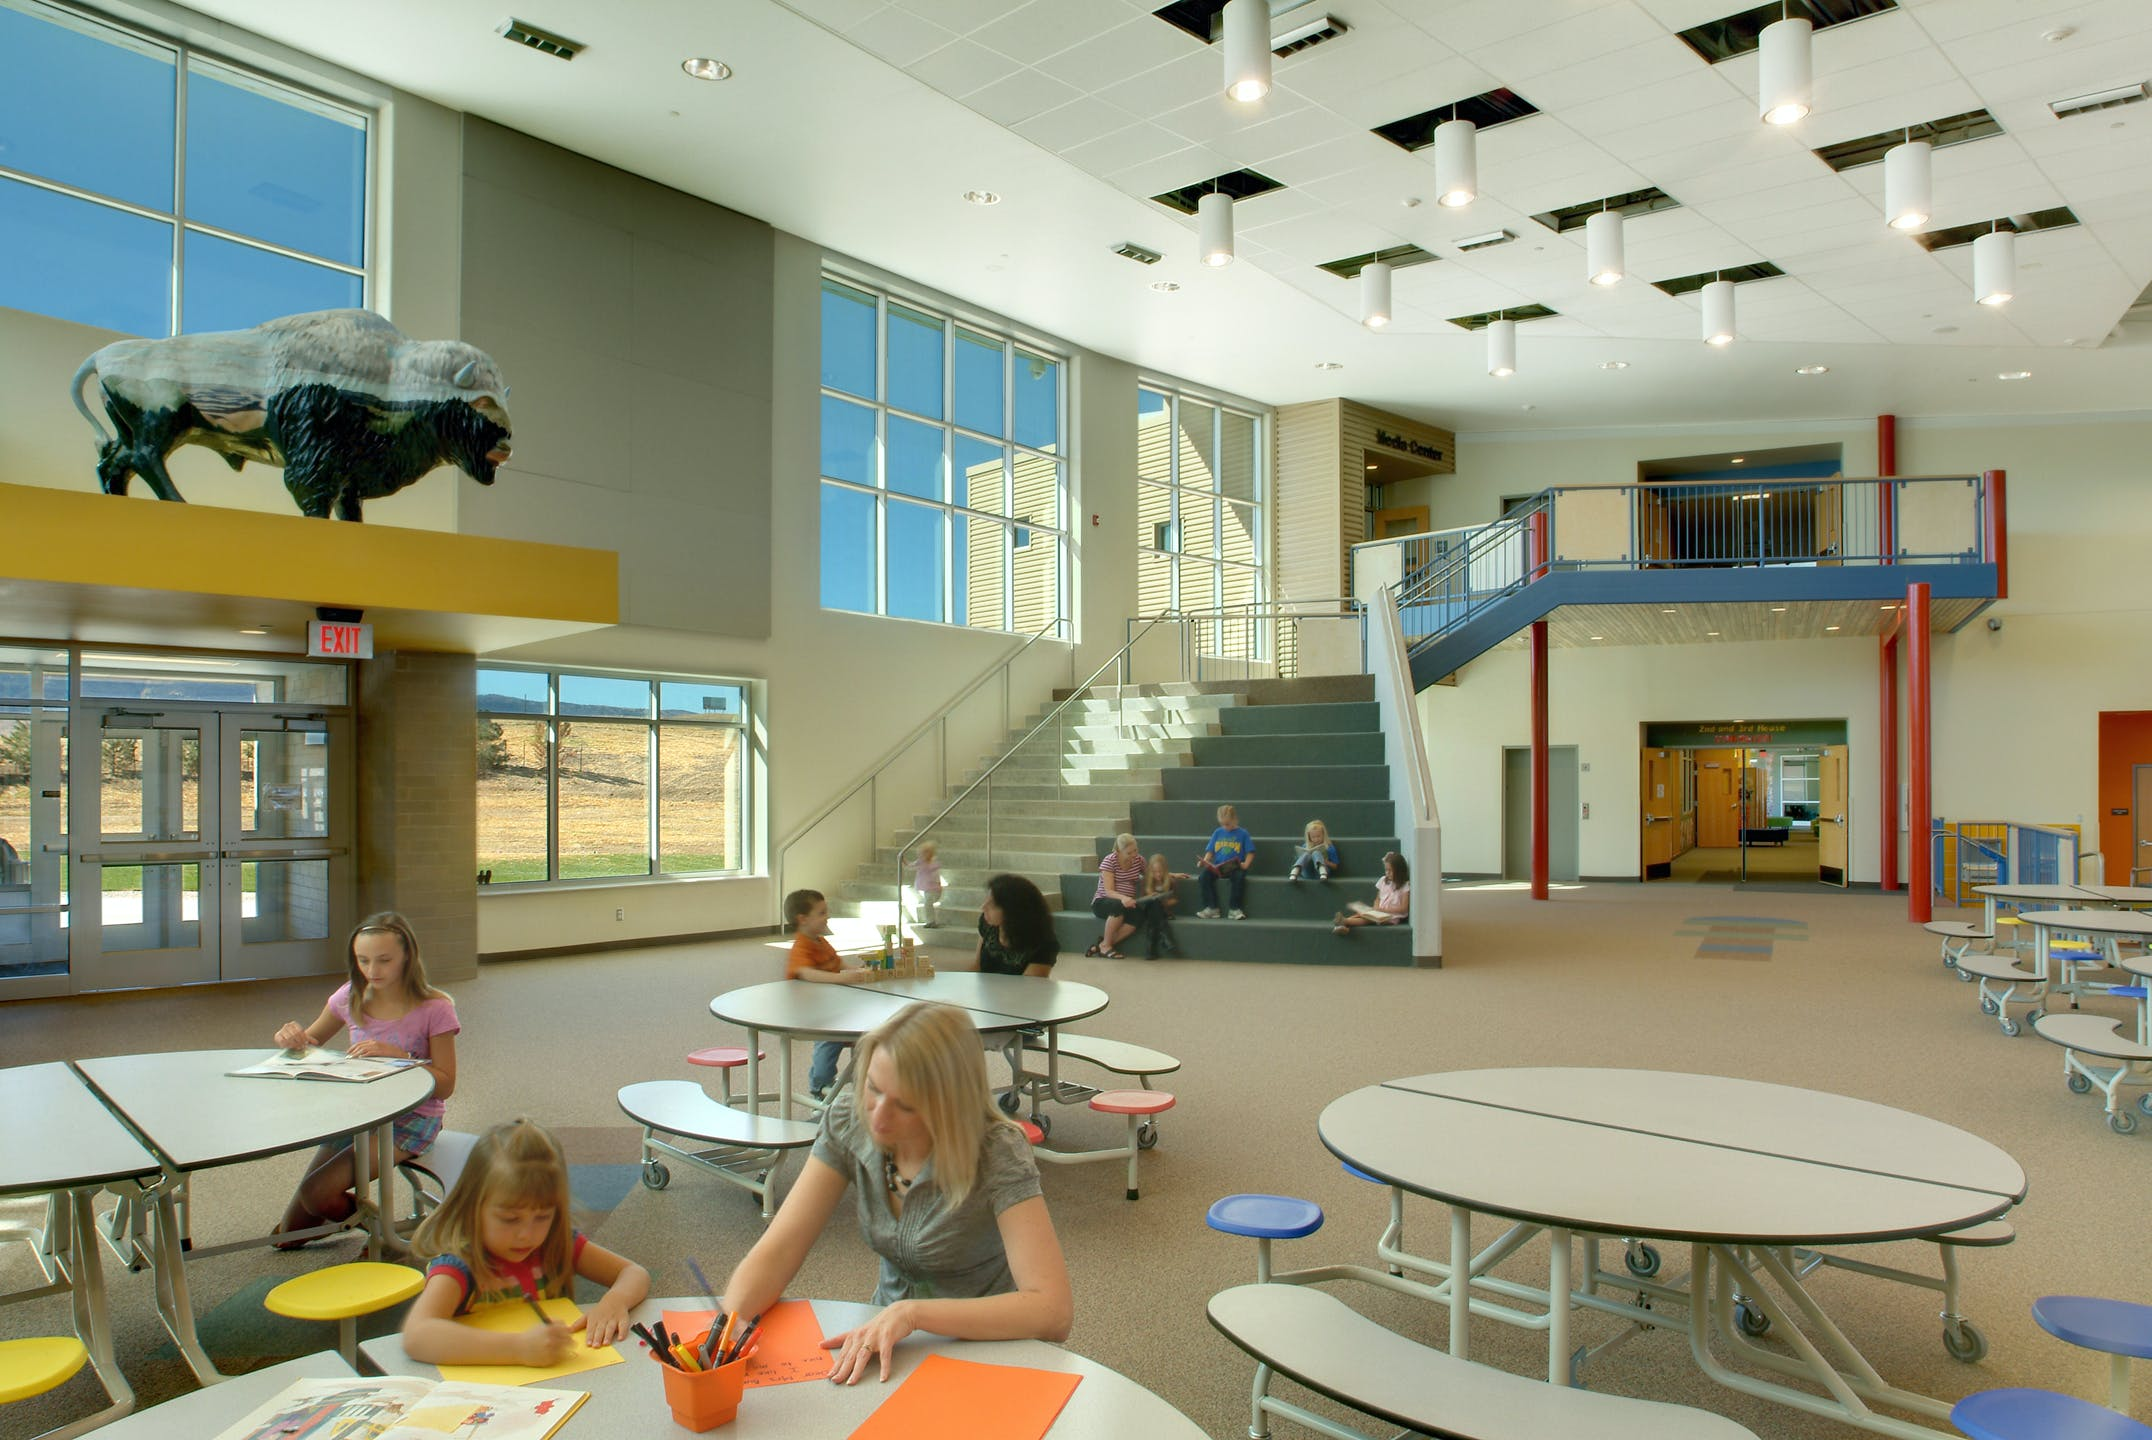 Summit elementary school lee h skolnick architecture for New york school of interior design acceptance rate